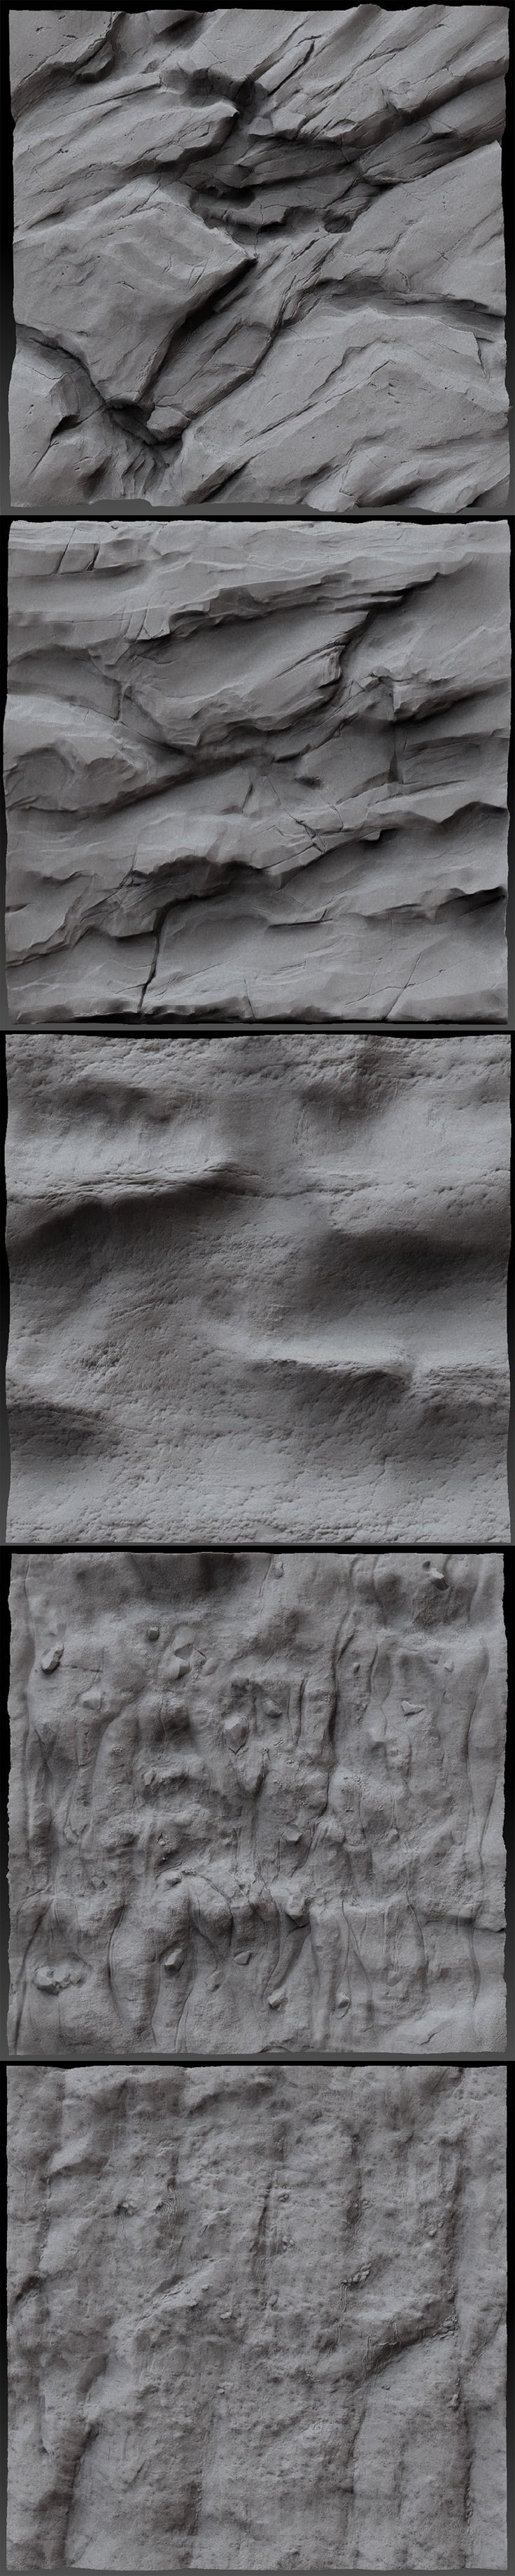 only volumetric rock shapes